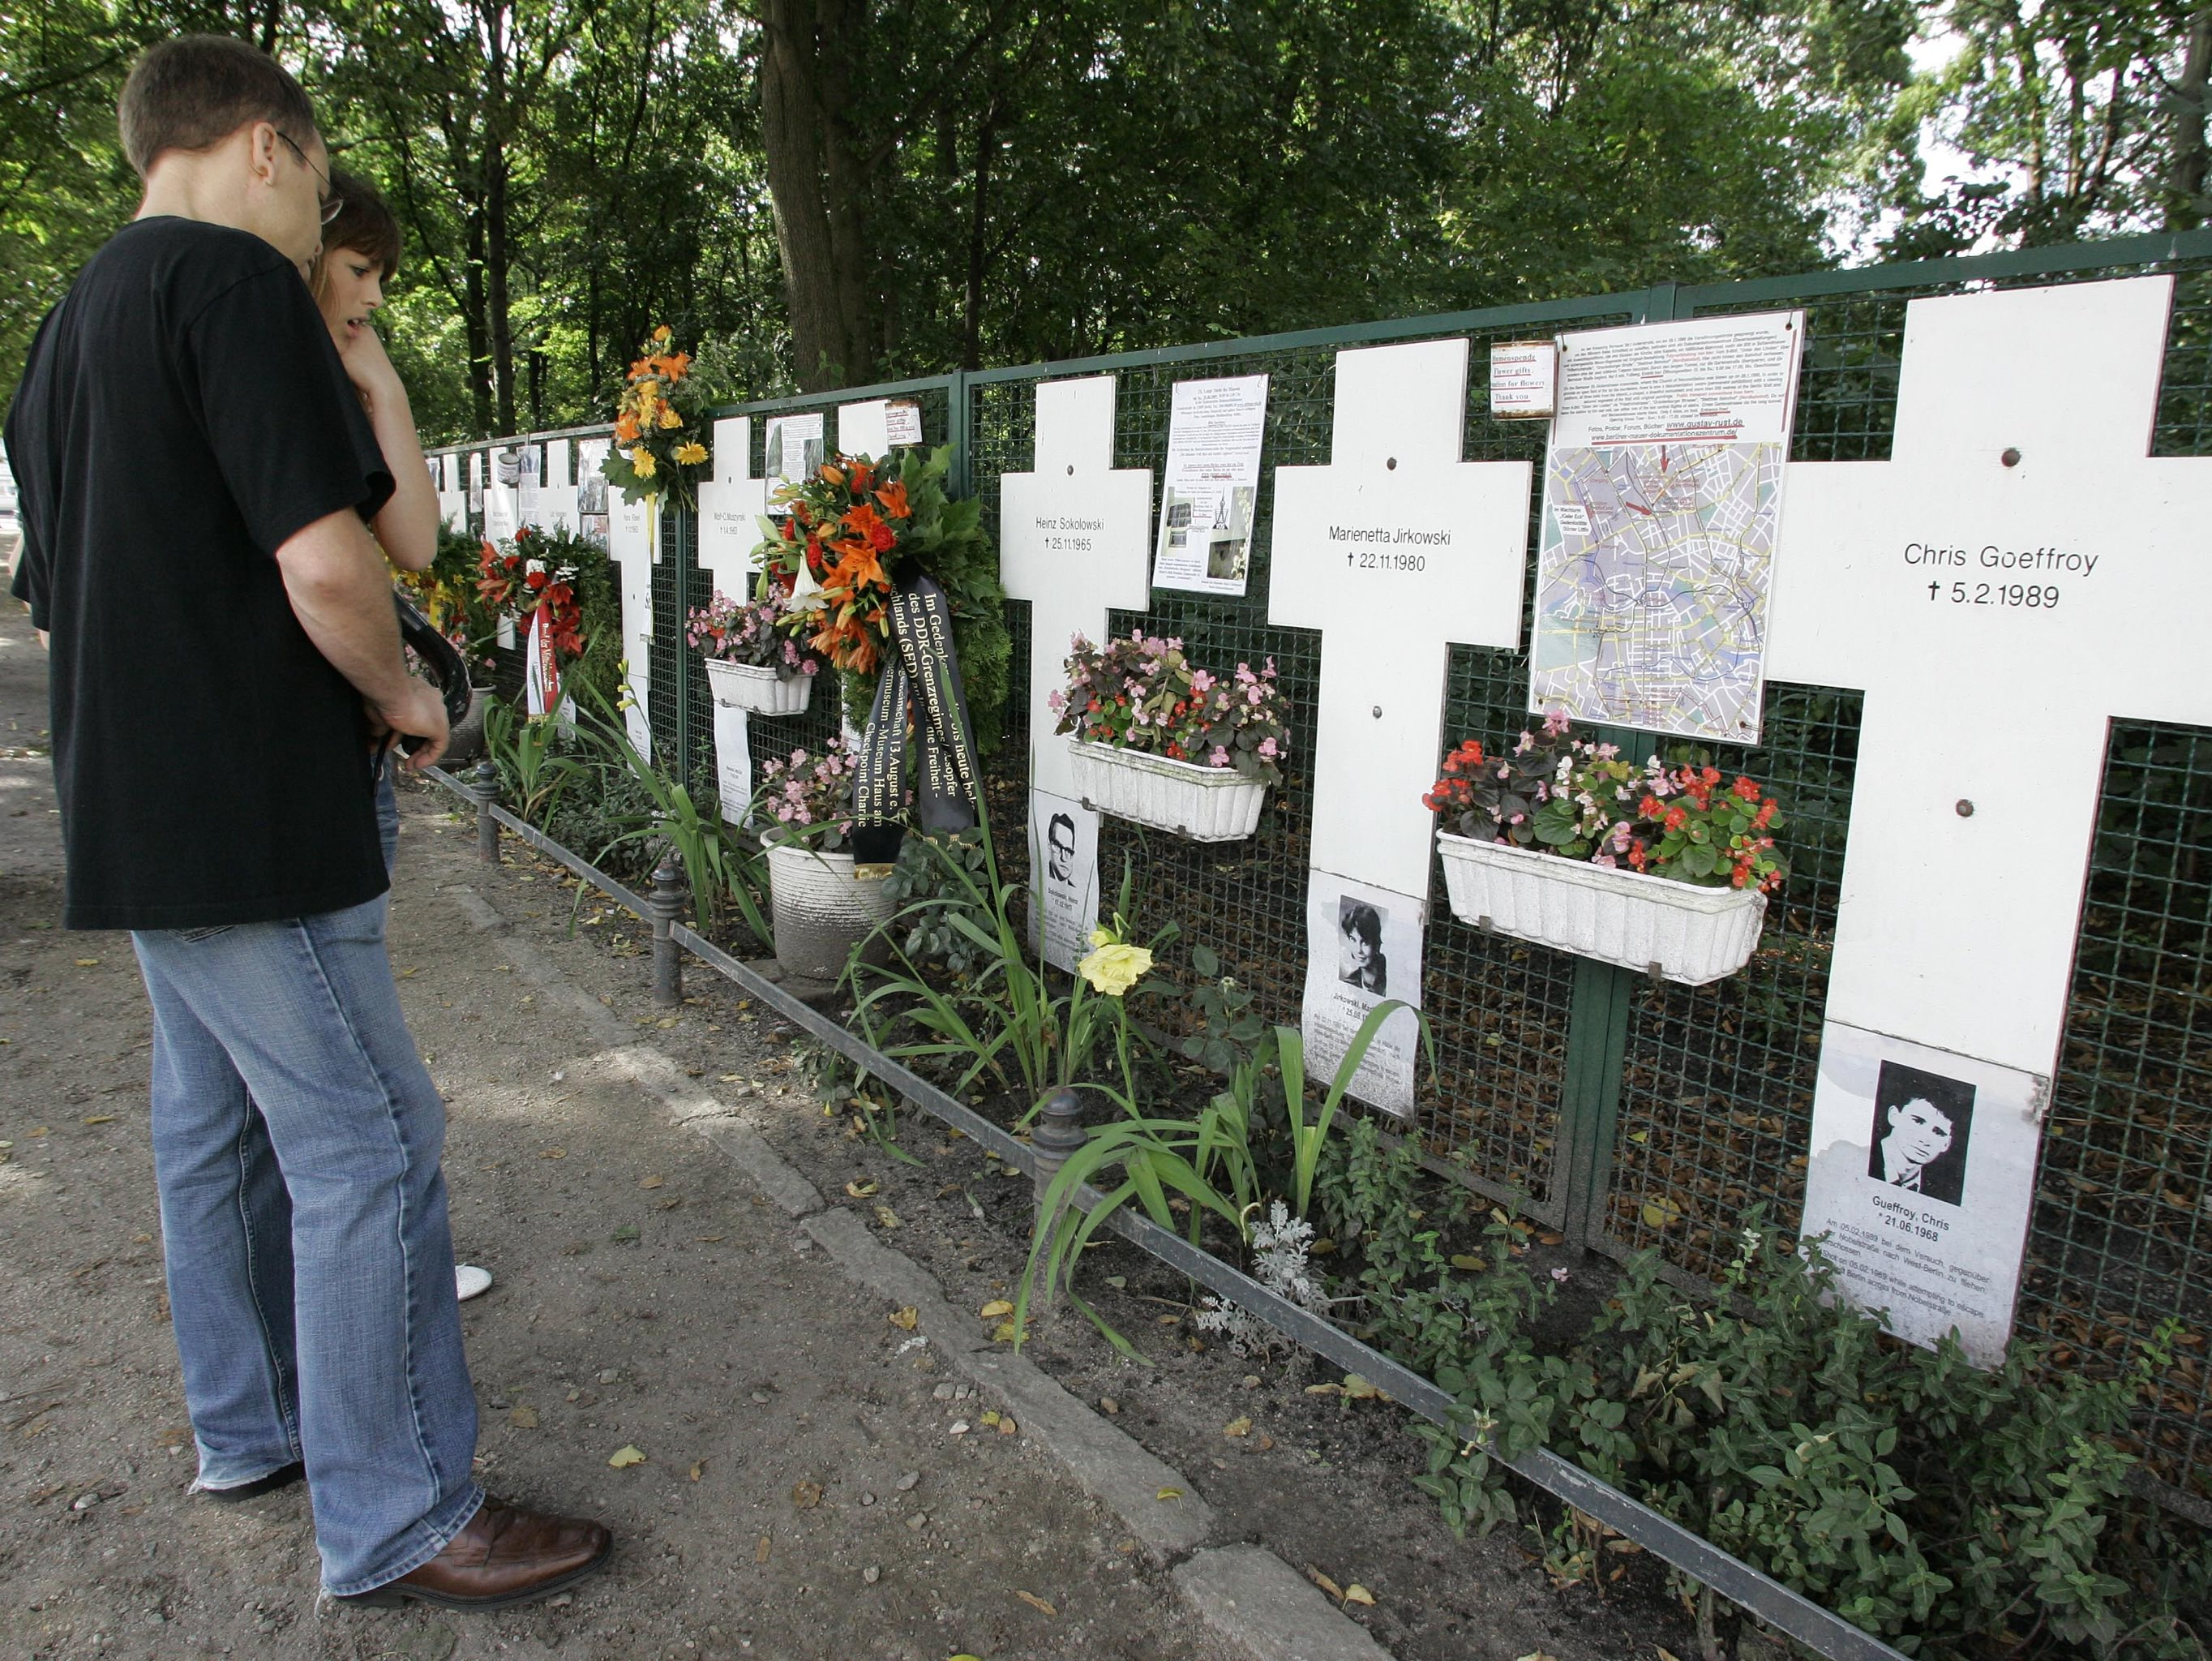 Tourists look at the remembrance crosses for the victims of the Berlin wall, August 13, 2007 in Berlin